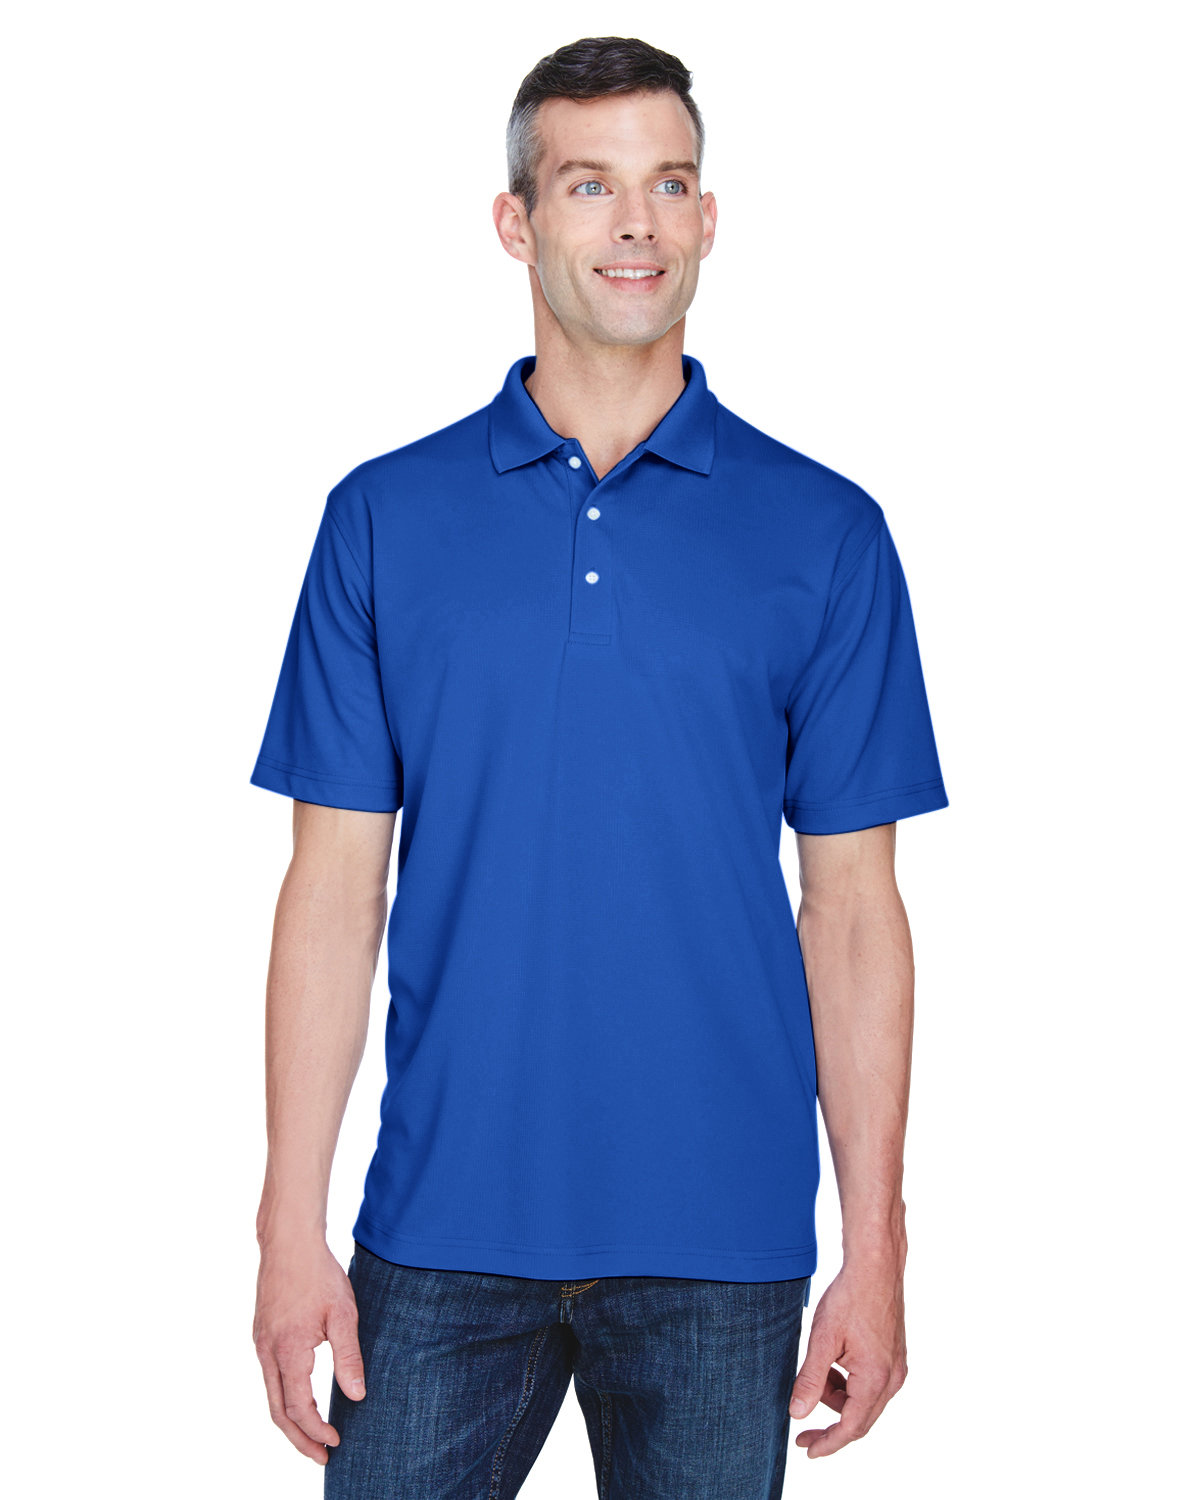 UltraClub Men's Cool & Dry Stain-Release Performance Polo COBALT